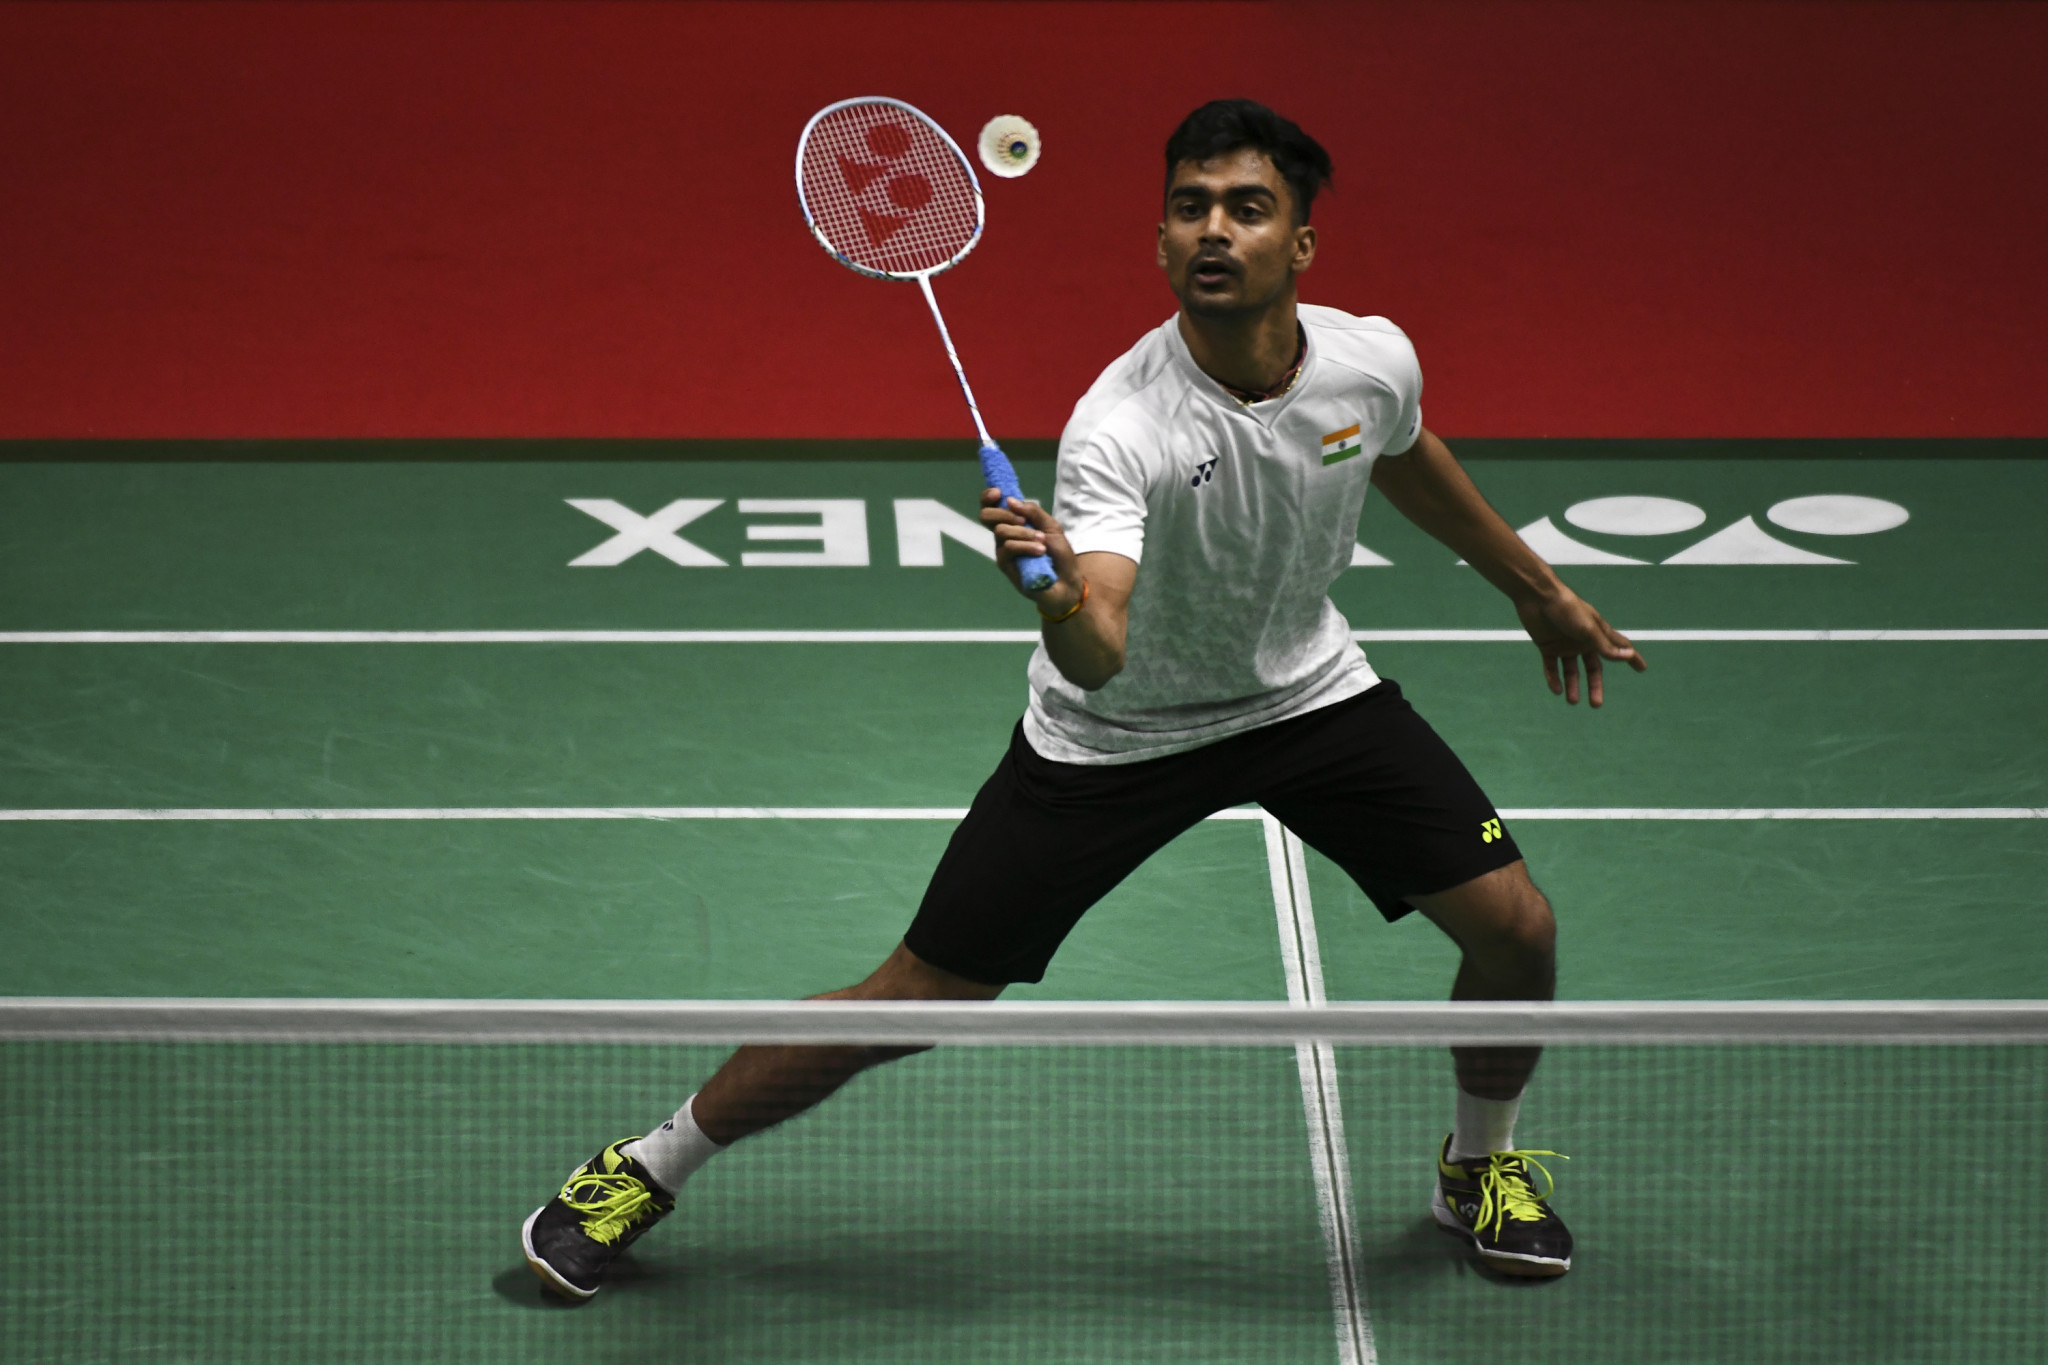 India's Sameer Verma is the top seed in the men's singles event ©Getty Images